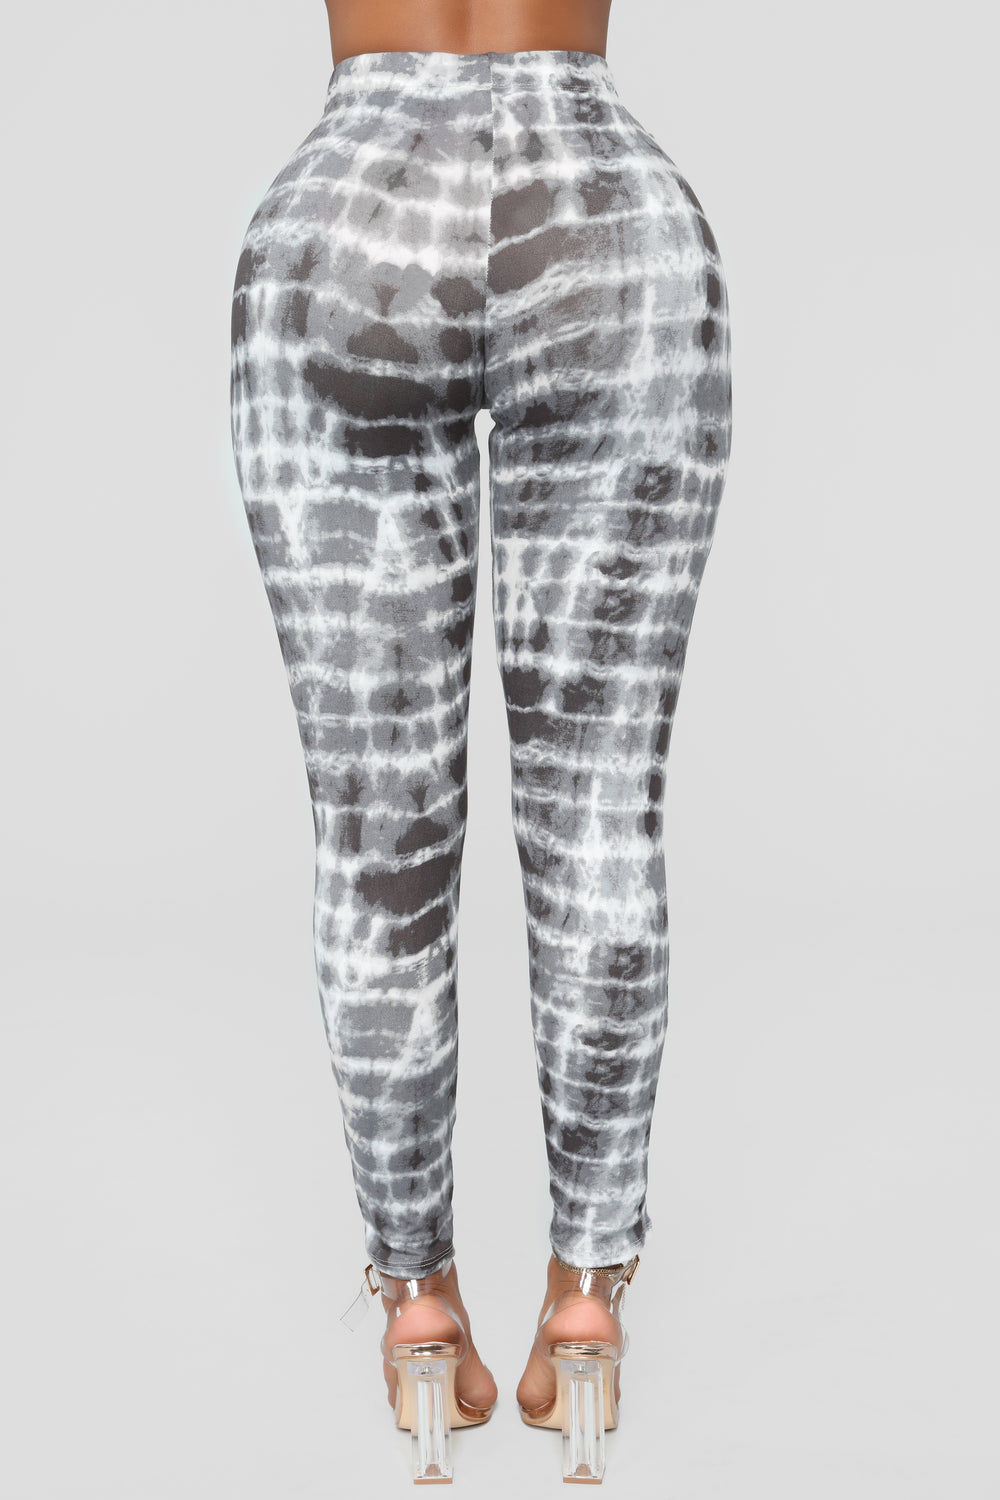 Don't Tye Me Down Leggings - Charcoal